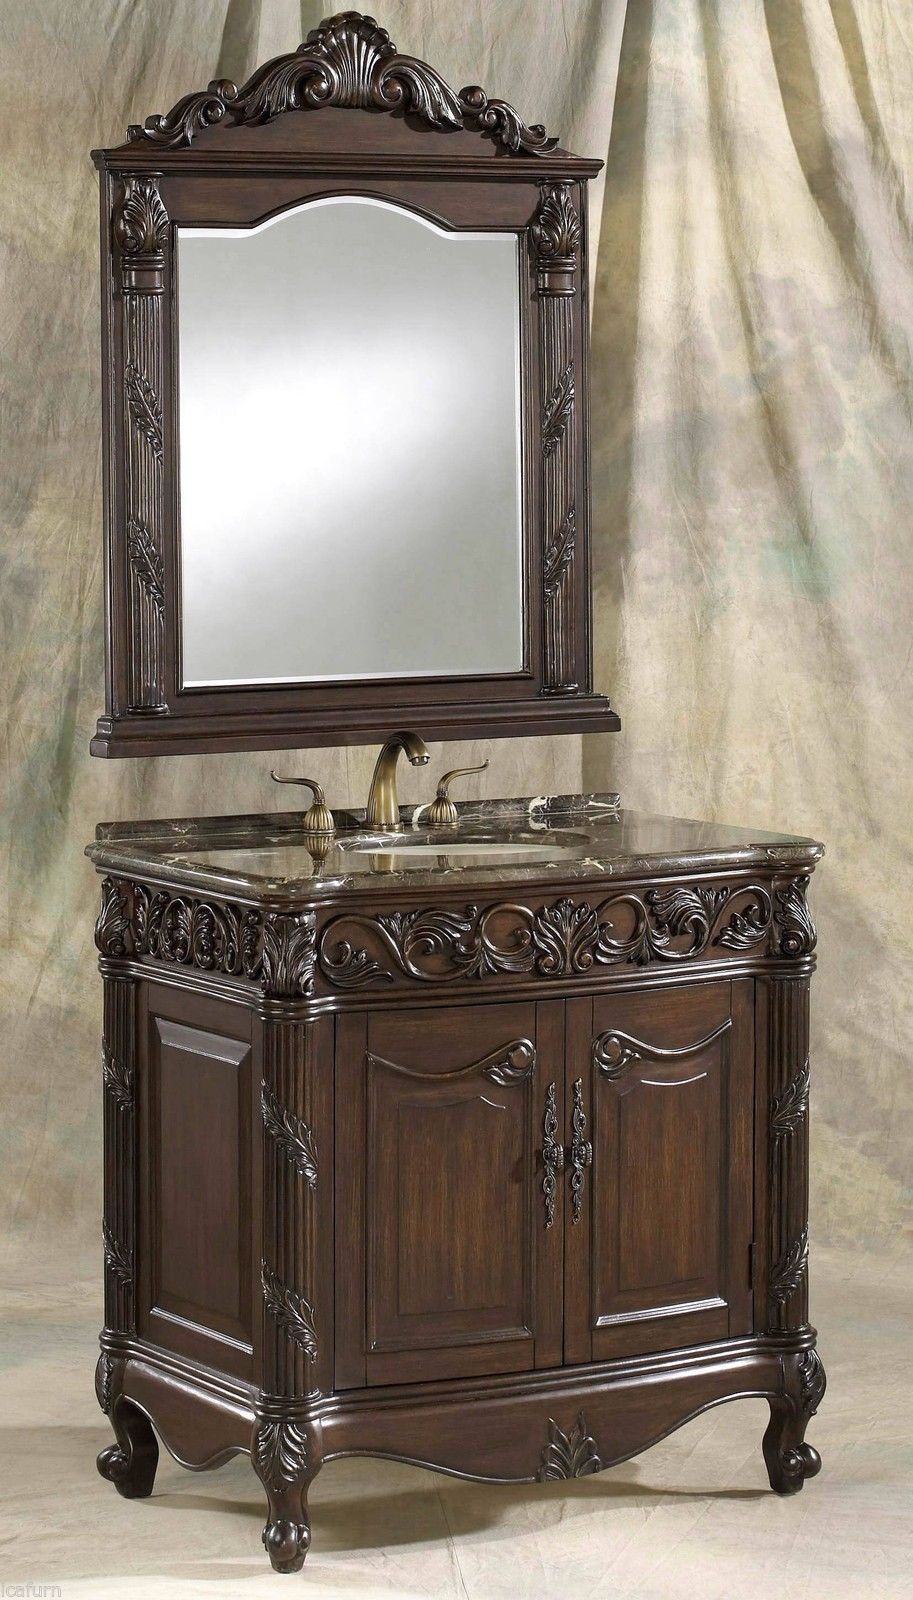 Vintage Bathroom Vanity Furniture (Image 17 of 17)